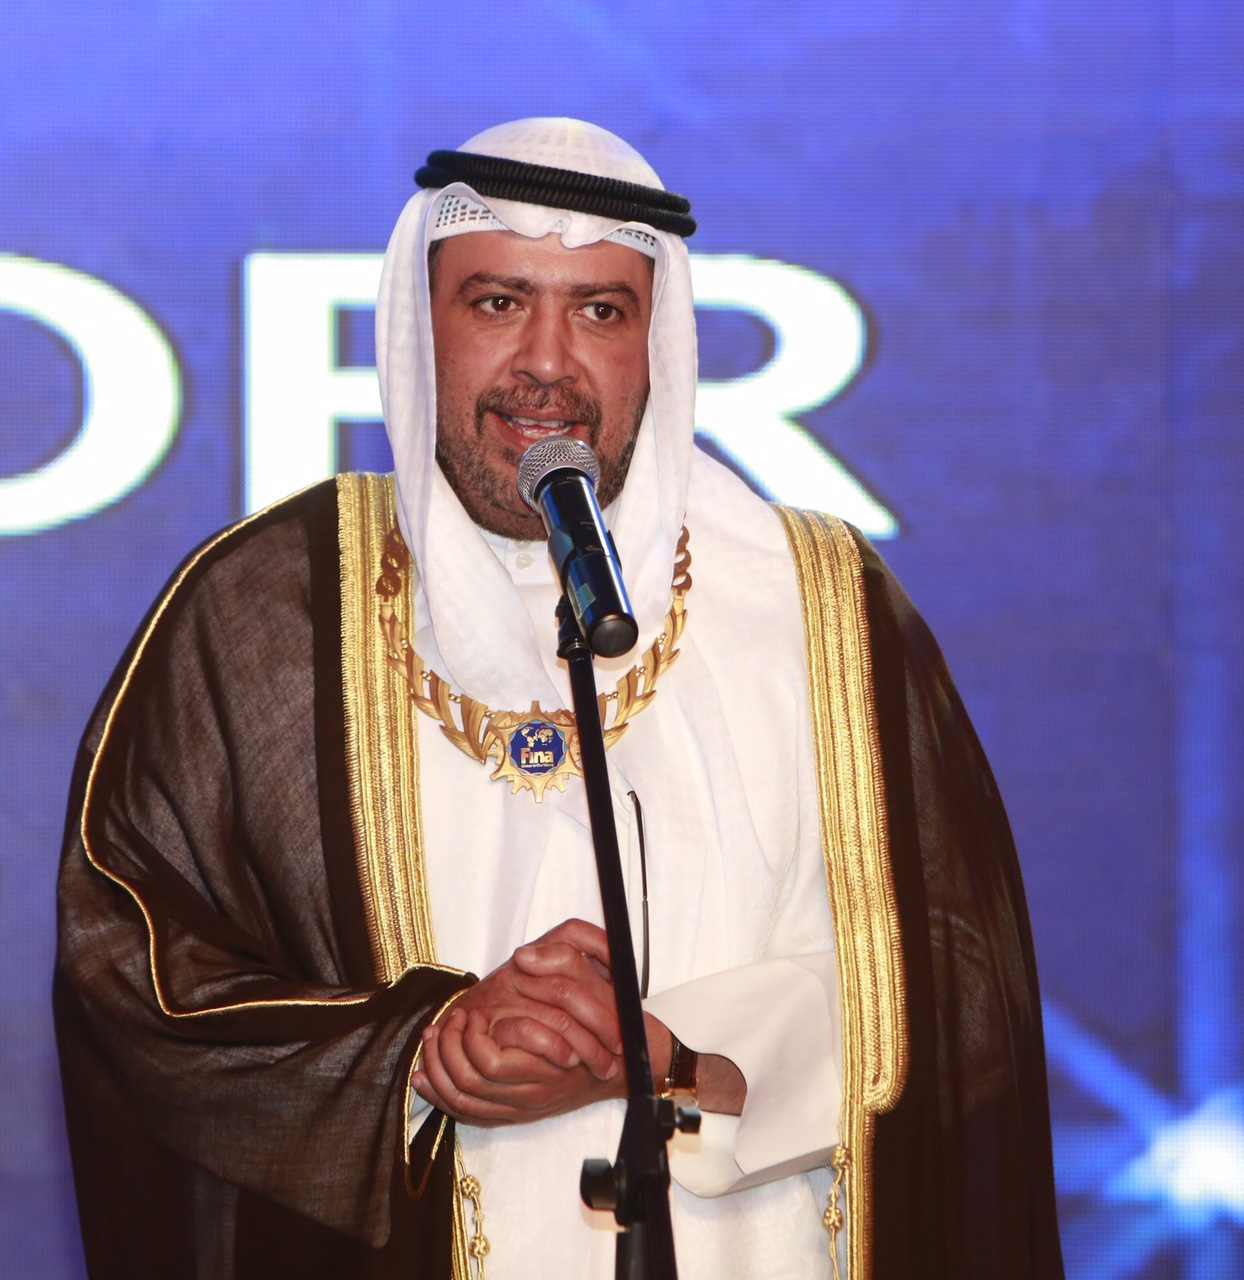 President of the Association of National Olympic Committees ANOC Sheikh Ahmad Fahad Al-Sabah has received a special award from FINA ©FINA